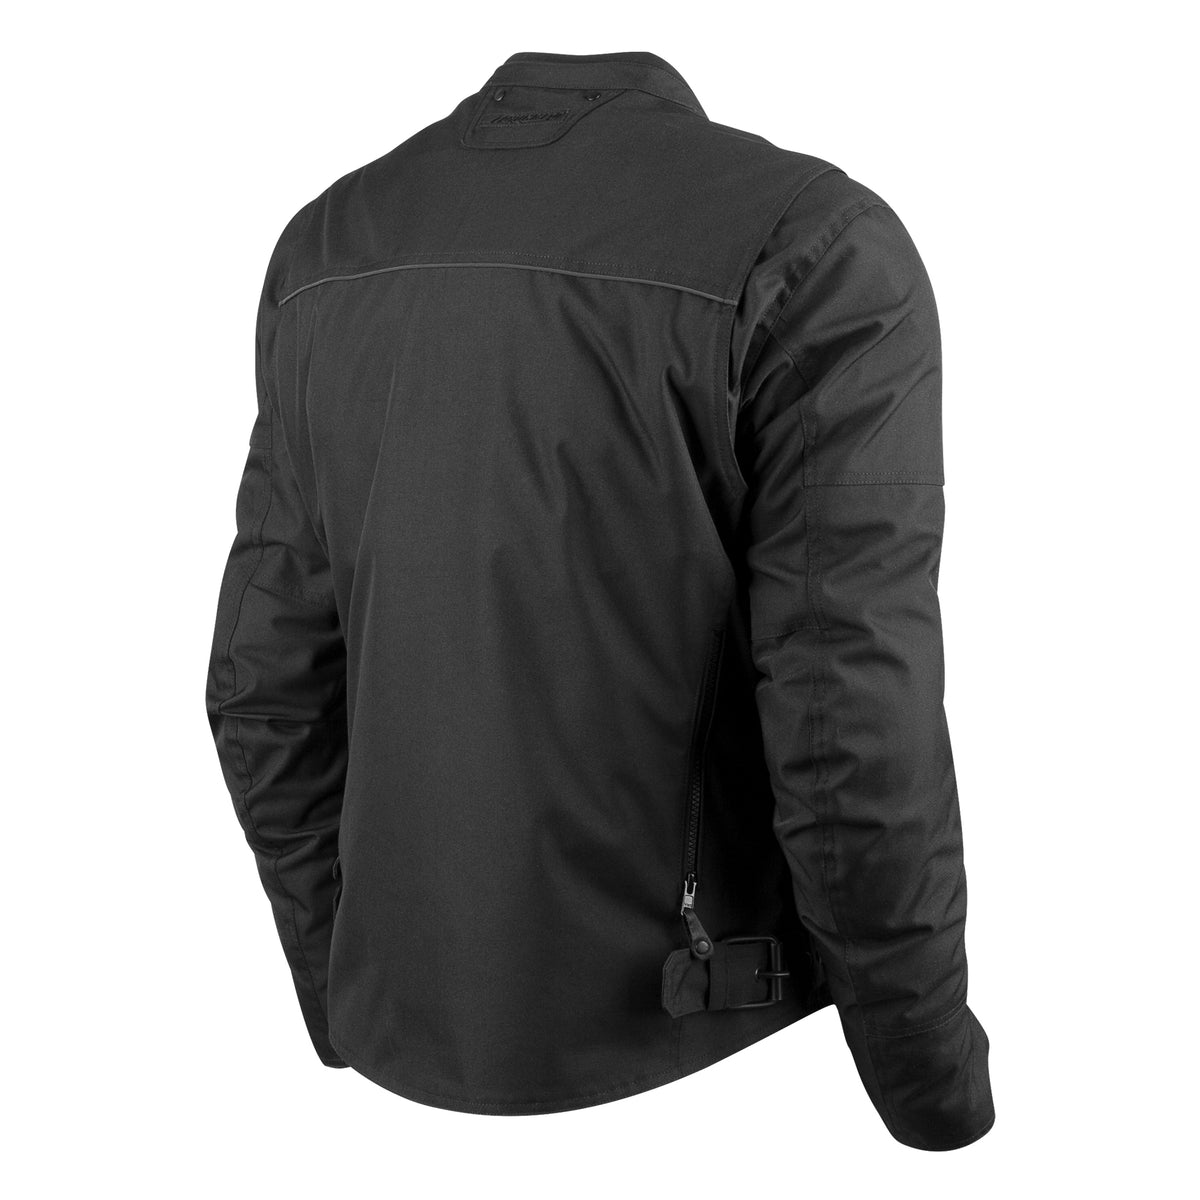 Super Cruiser Textile Jacket